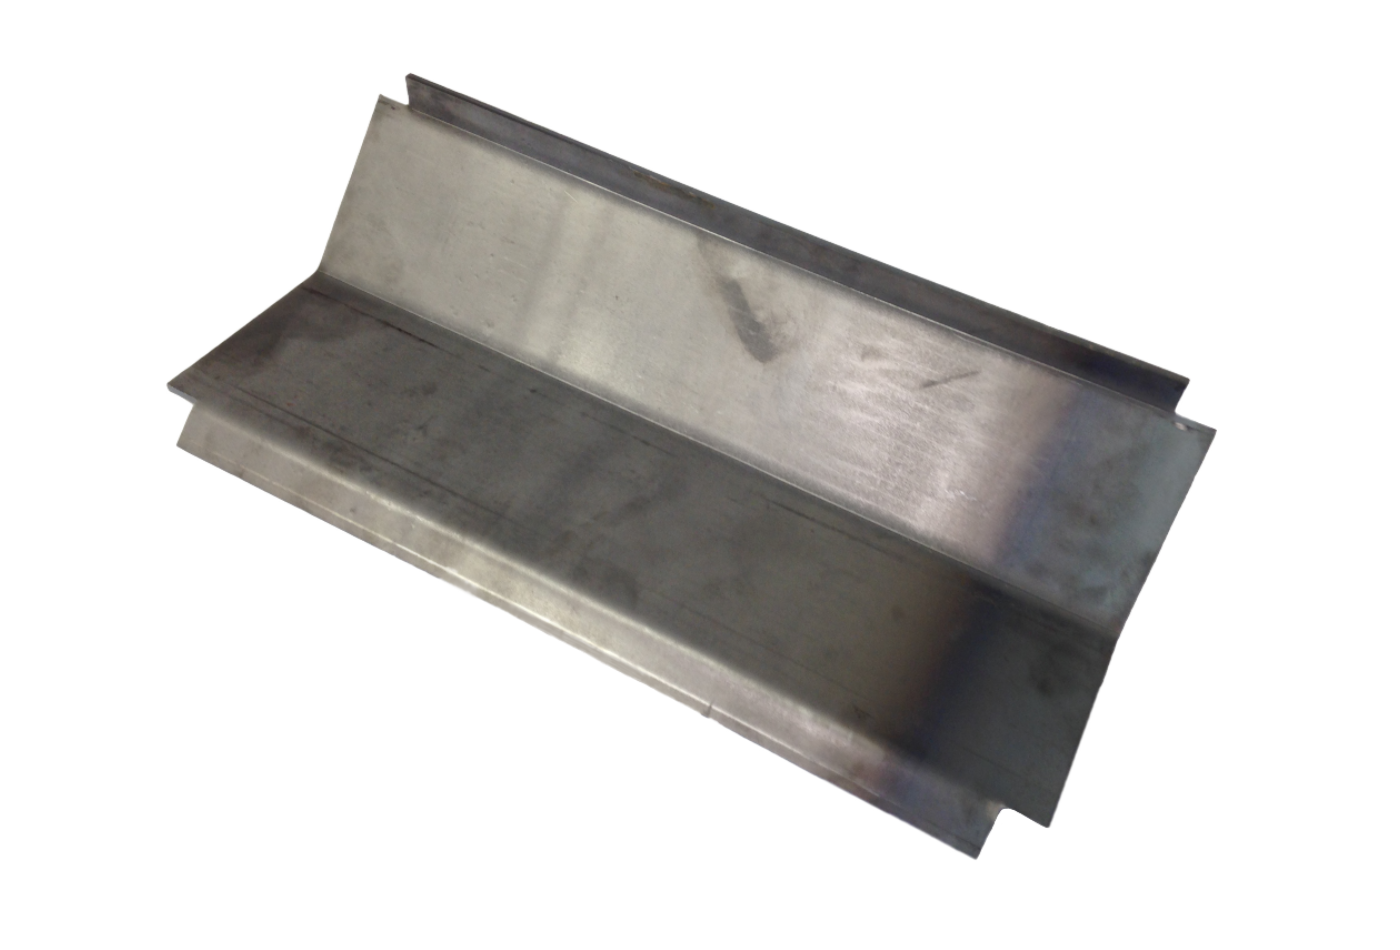 A replacement Baffle suitable for Clearview Solution 500 stoves.